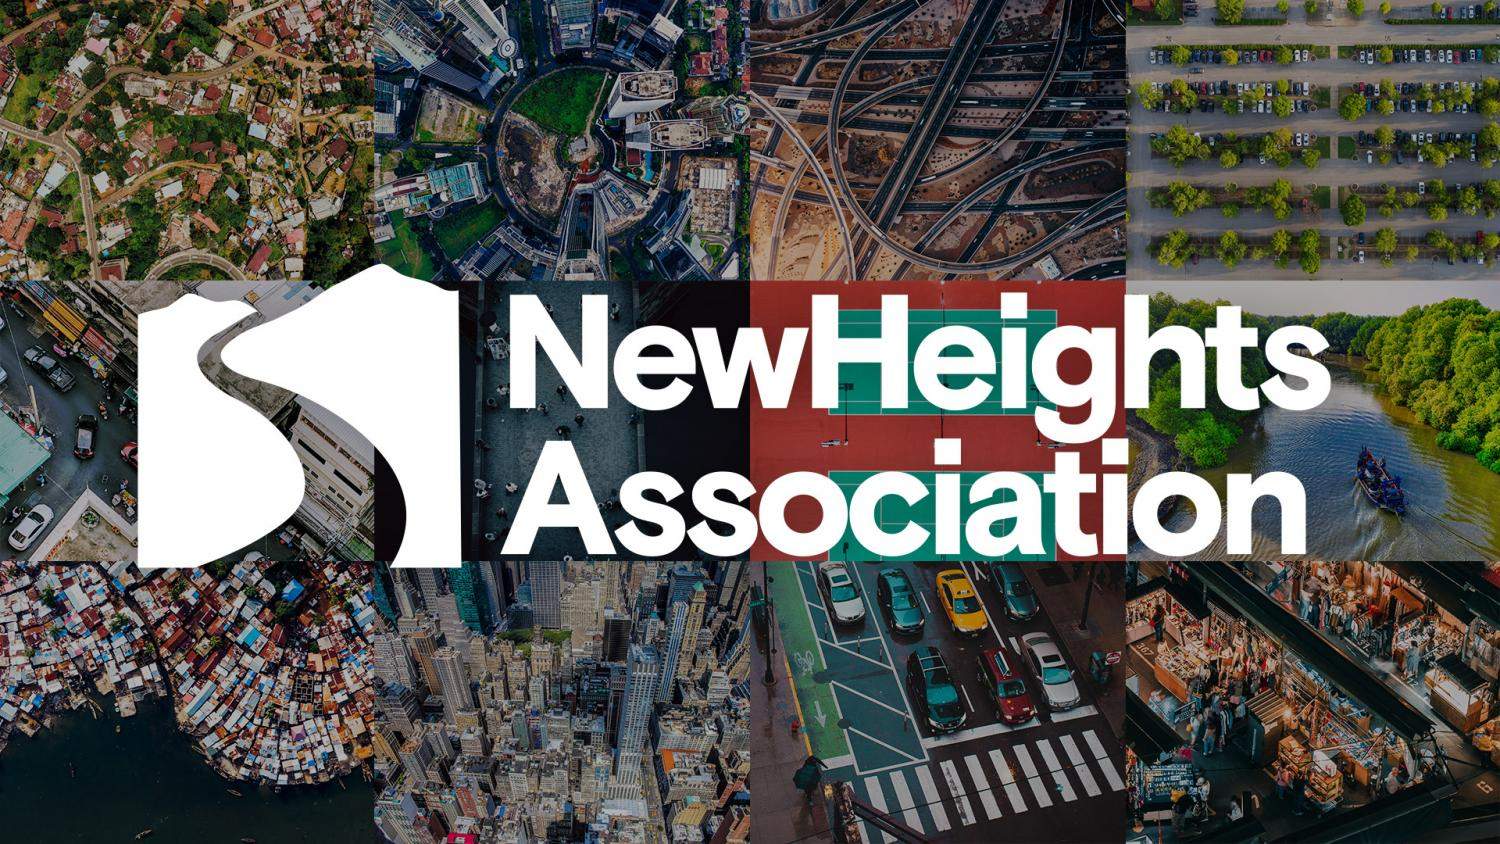 New Heights Association